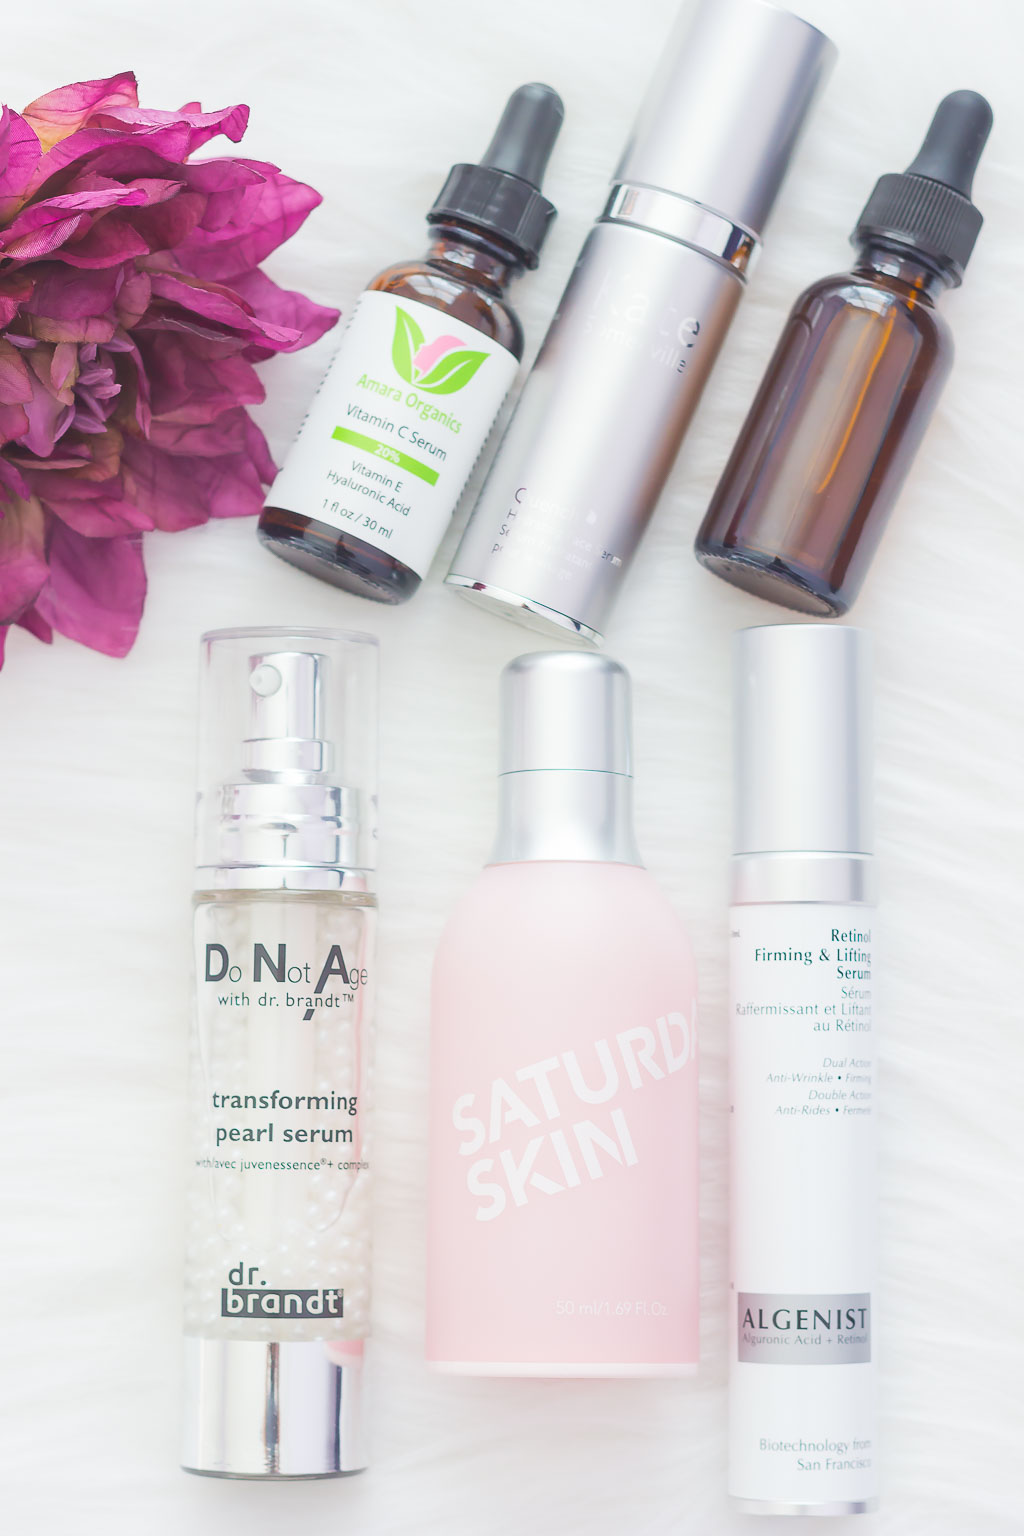 Serums can work wonders for targeting specific skin concerns, like dry patches, wrinkles, and loss of firmness. With a high concentration of ingredients, it's said to pack a punch and is a must-have before applying your moisturizer!